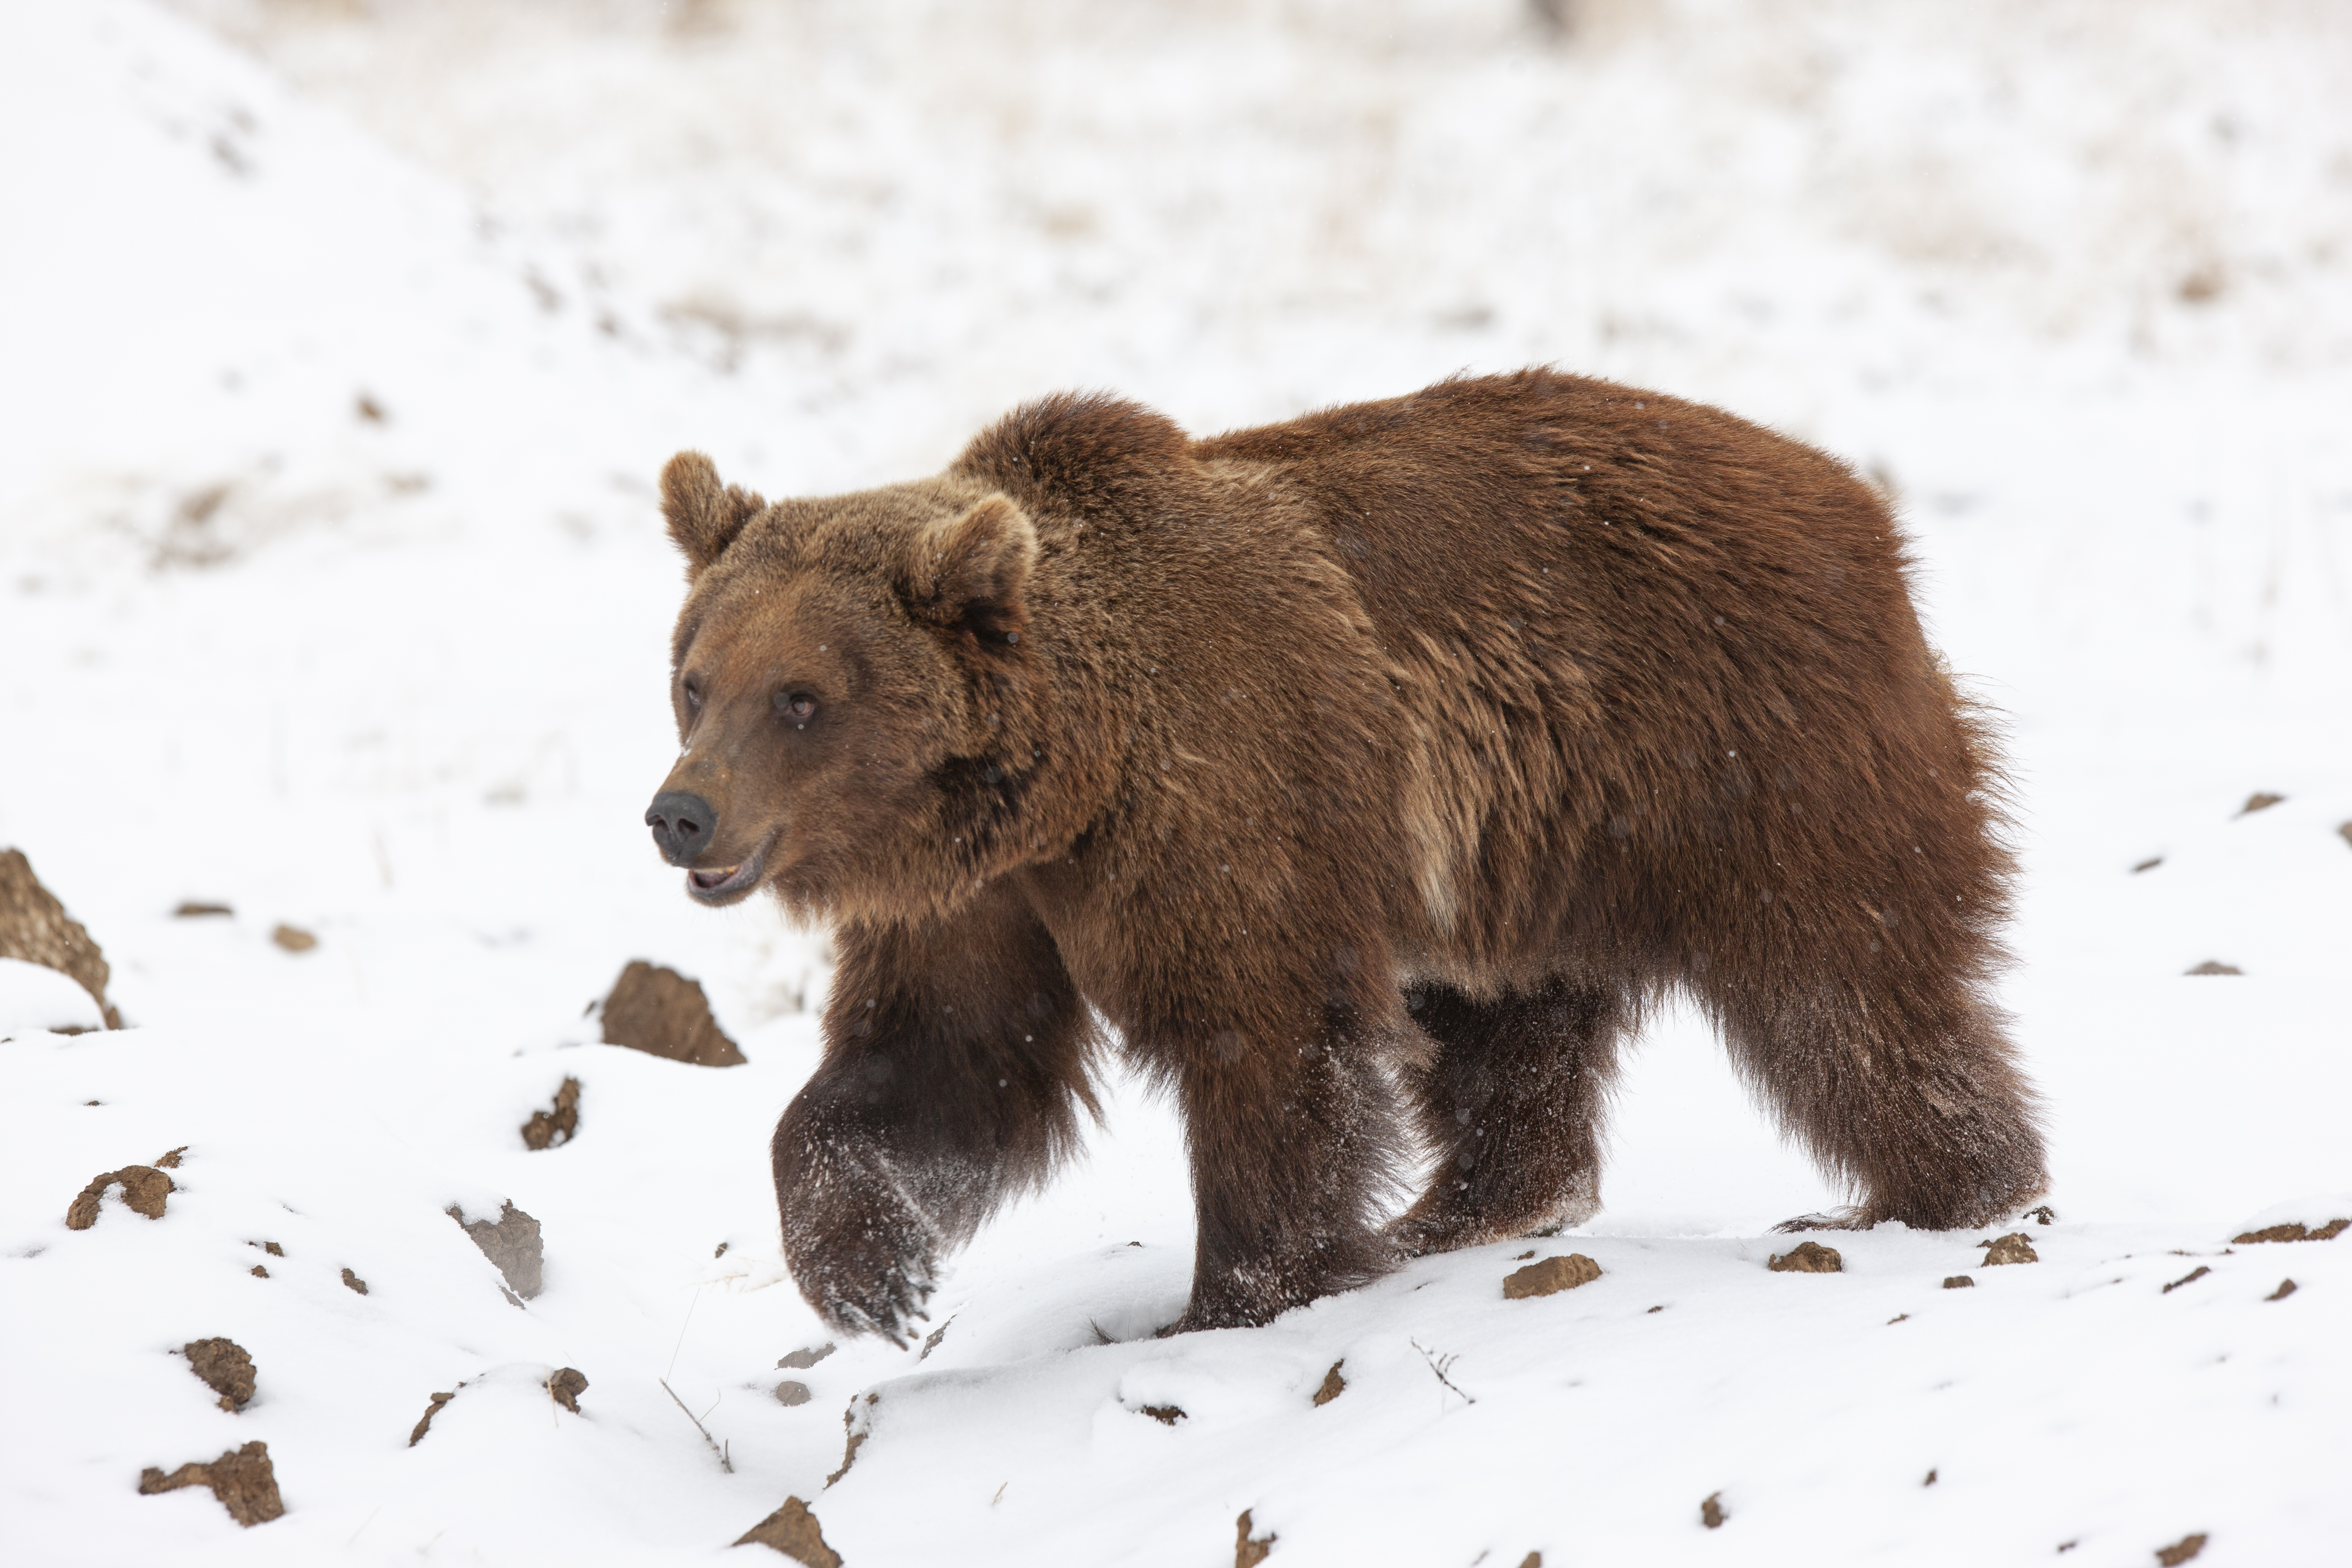 One of 10 grizzly bears relocated from Argentina to Colorado walks at the Wild Animal Sanctuary in Keenesburg.